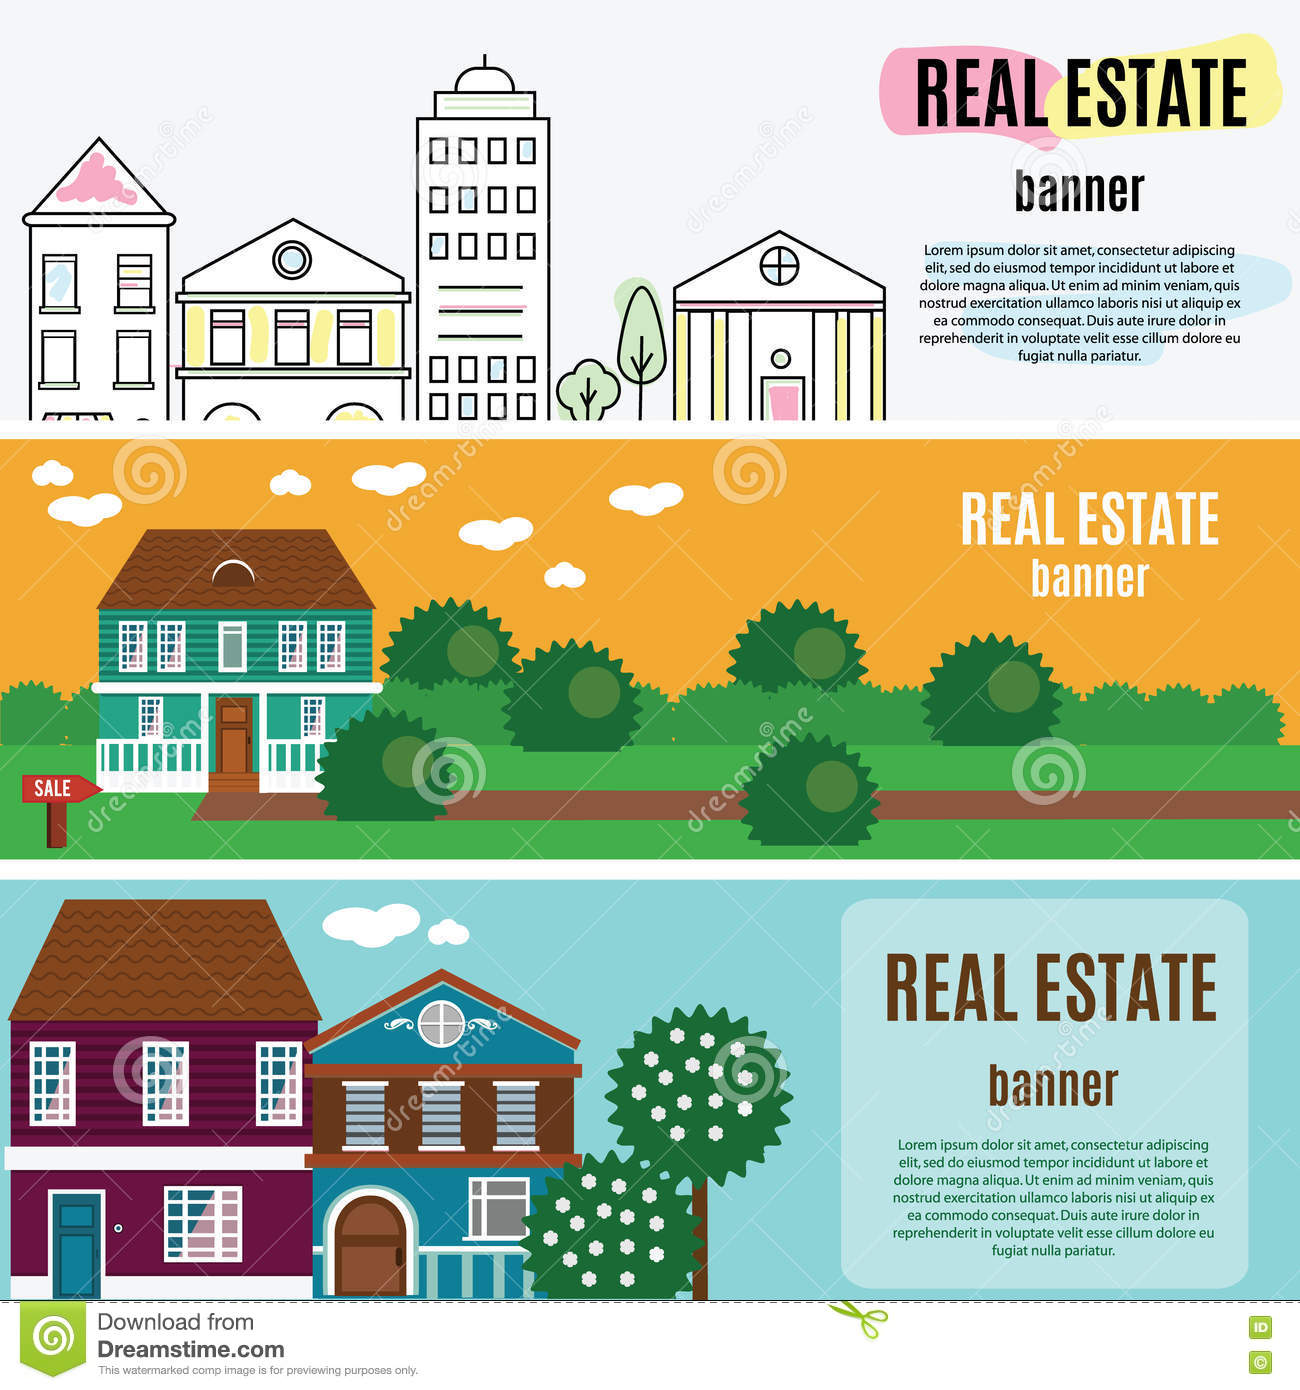 Real estate horizontal banners. House, cottage, townhouse, home vector illustration